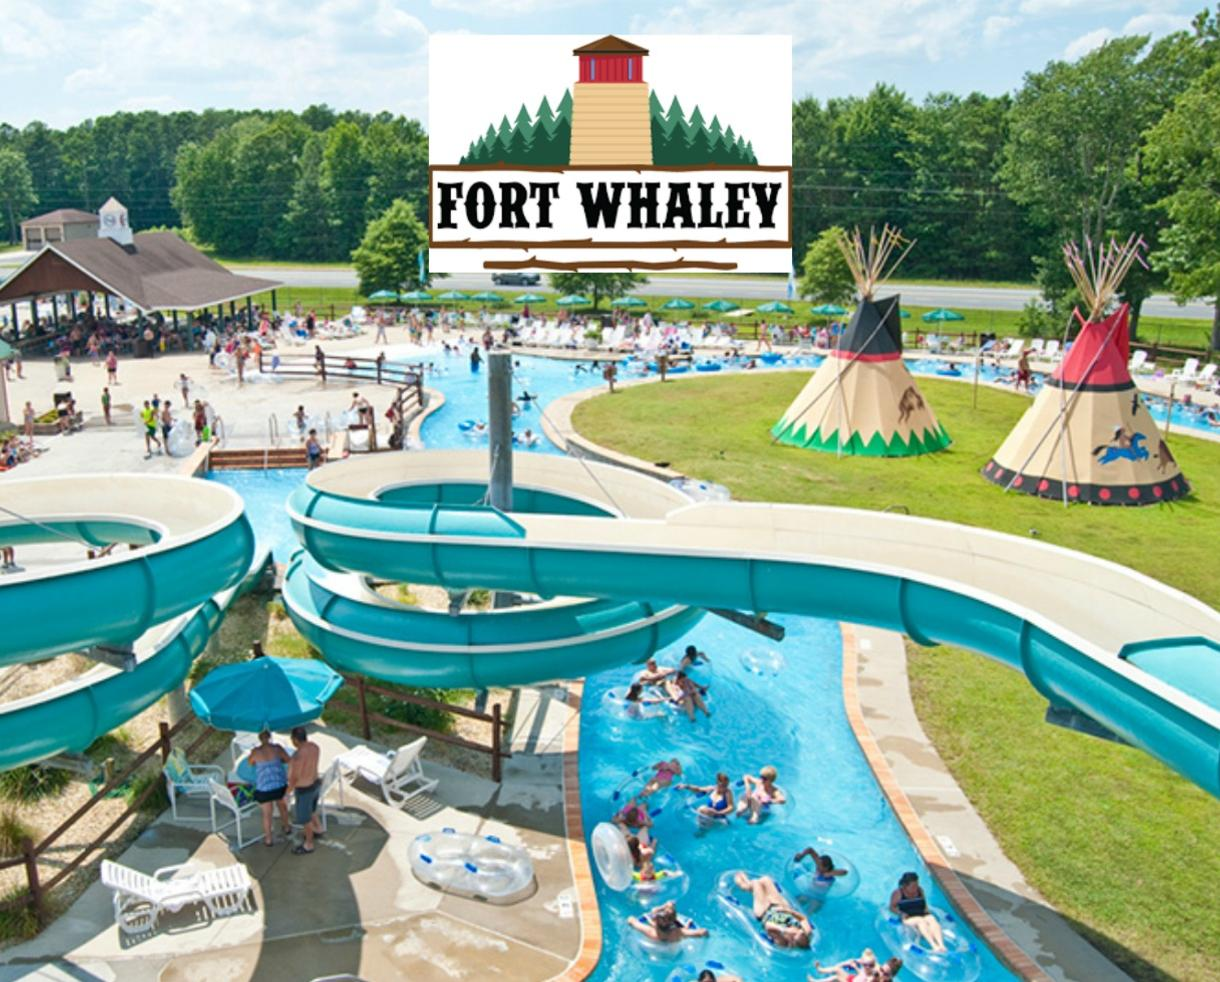 $97 for 2-Night Water & Electric RV Site at Fort Whaley Near Ocean City, MD ($130 Value - 26% Off)